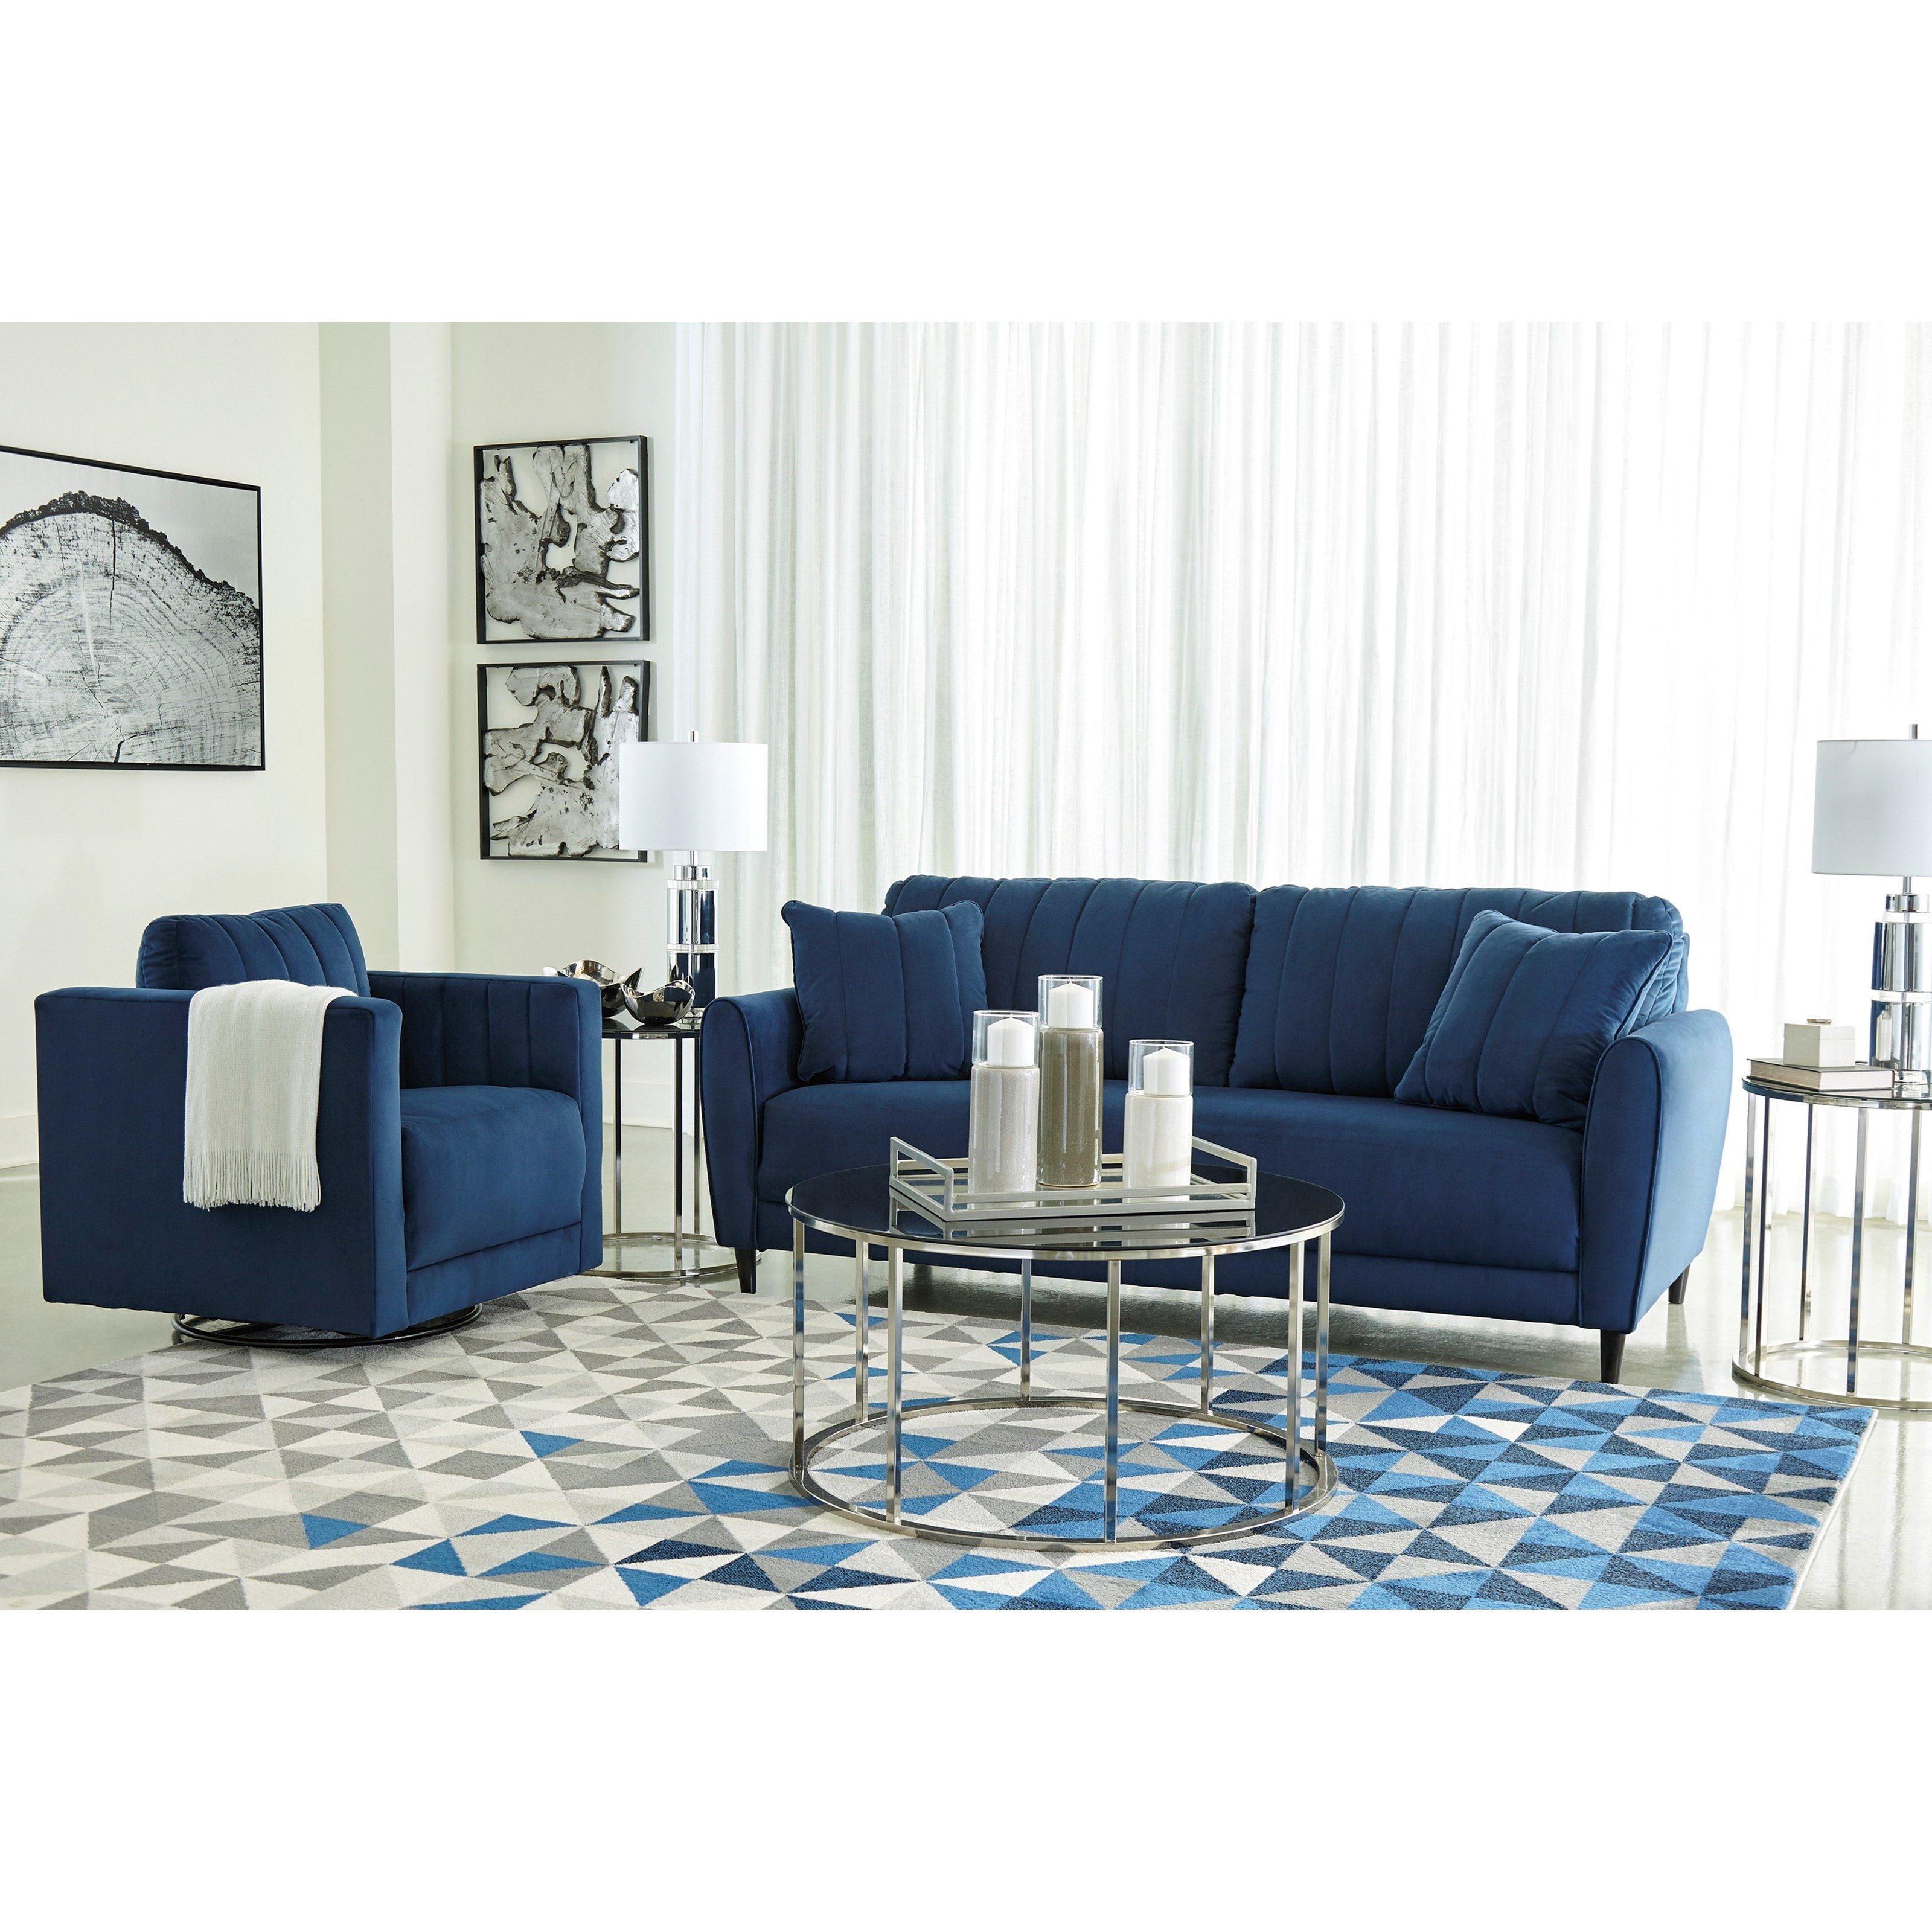 Enderlin Living Room Group by Signature Design by Ashley at Northeast Factory Direct